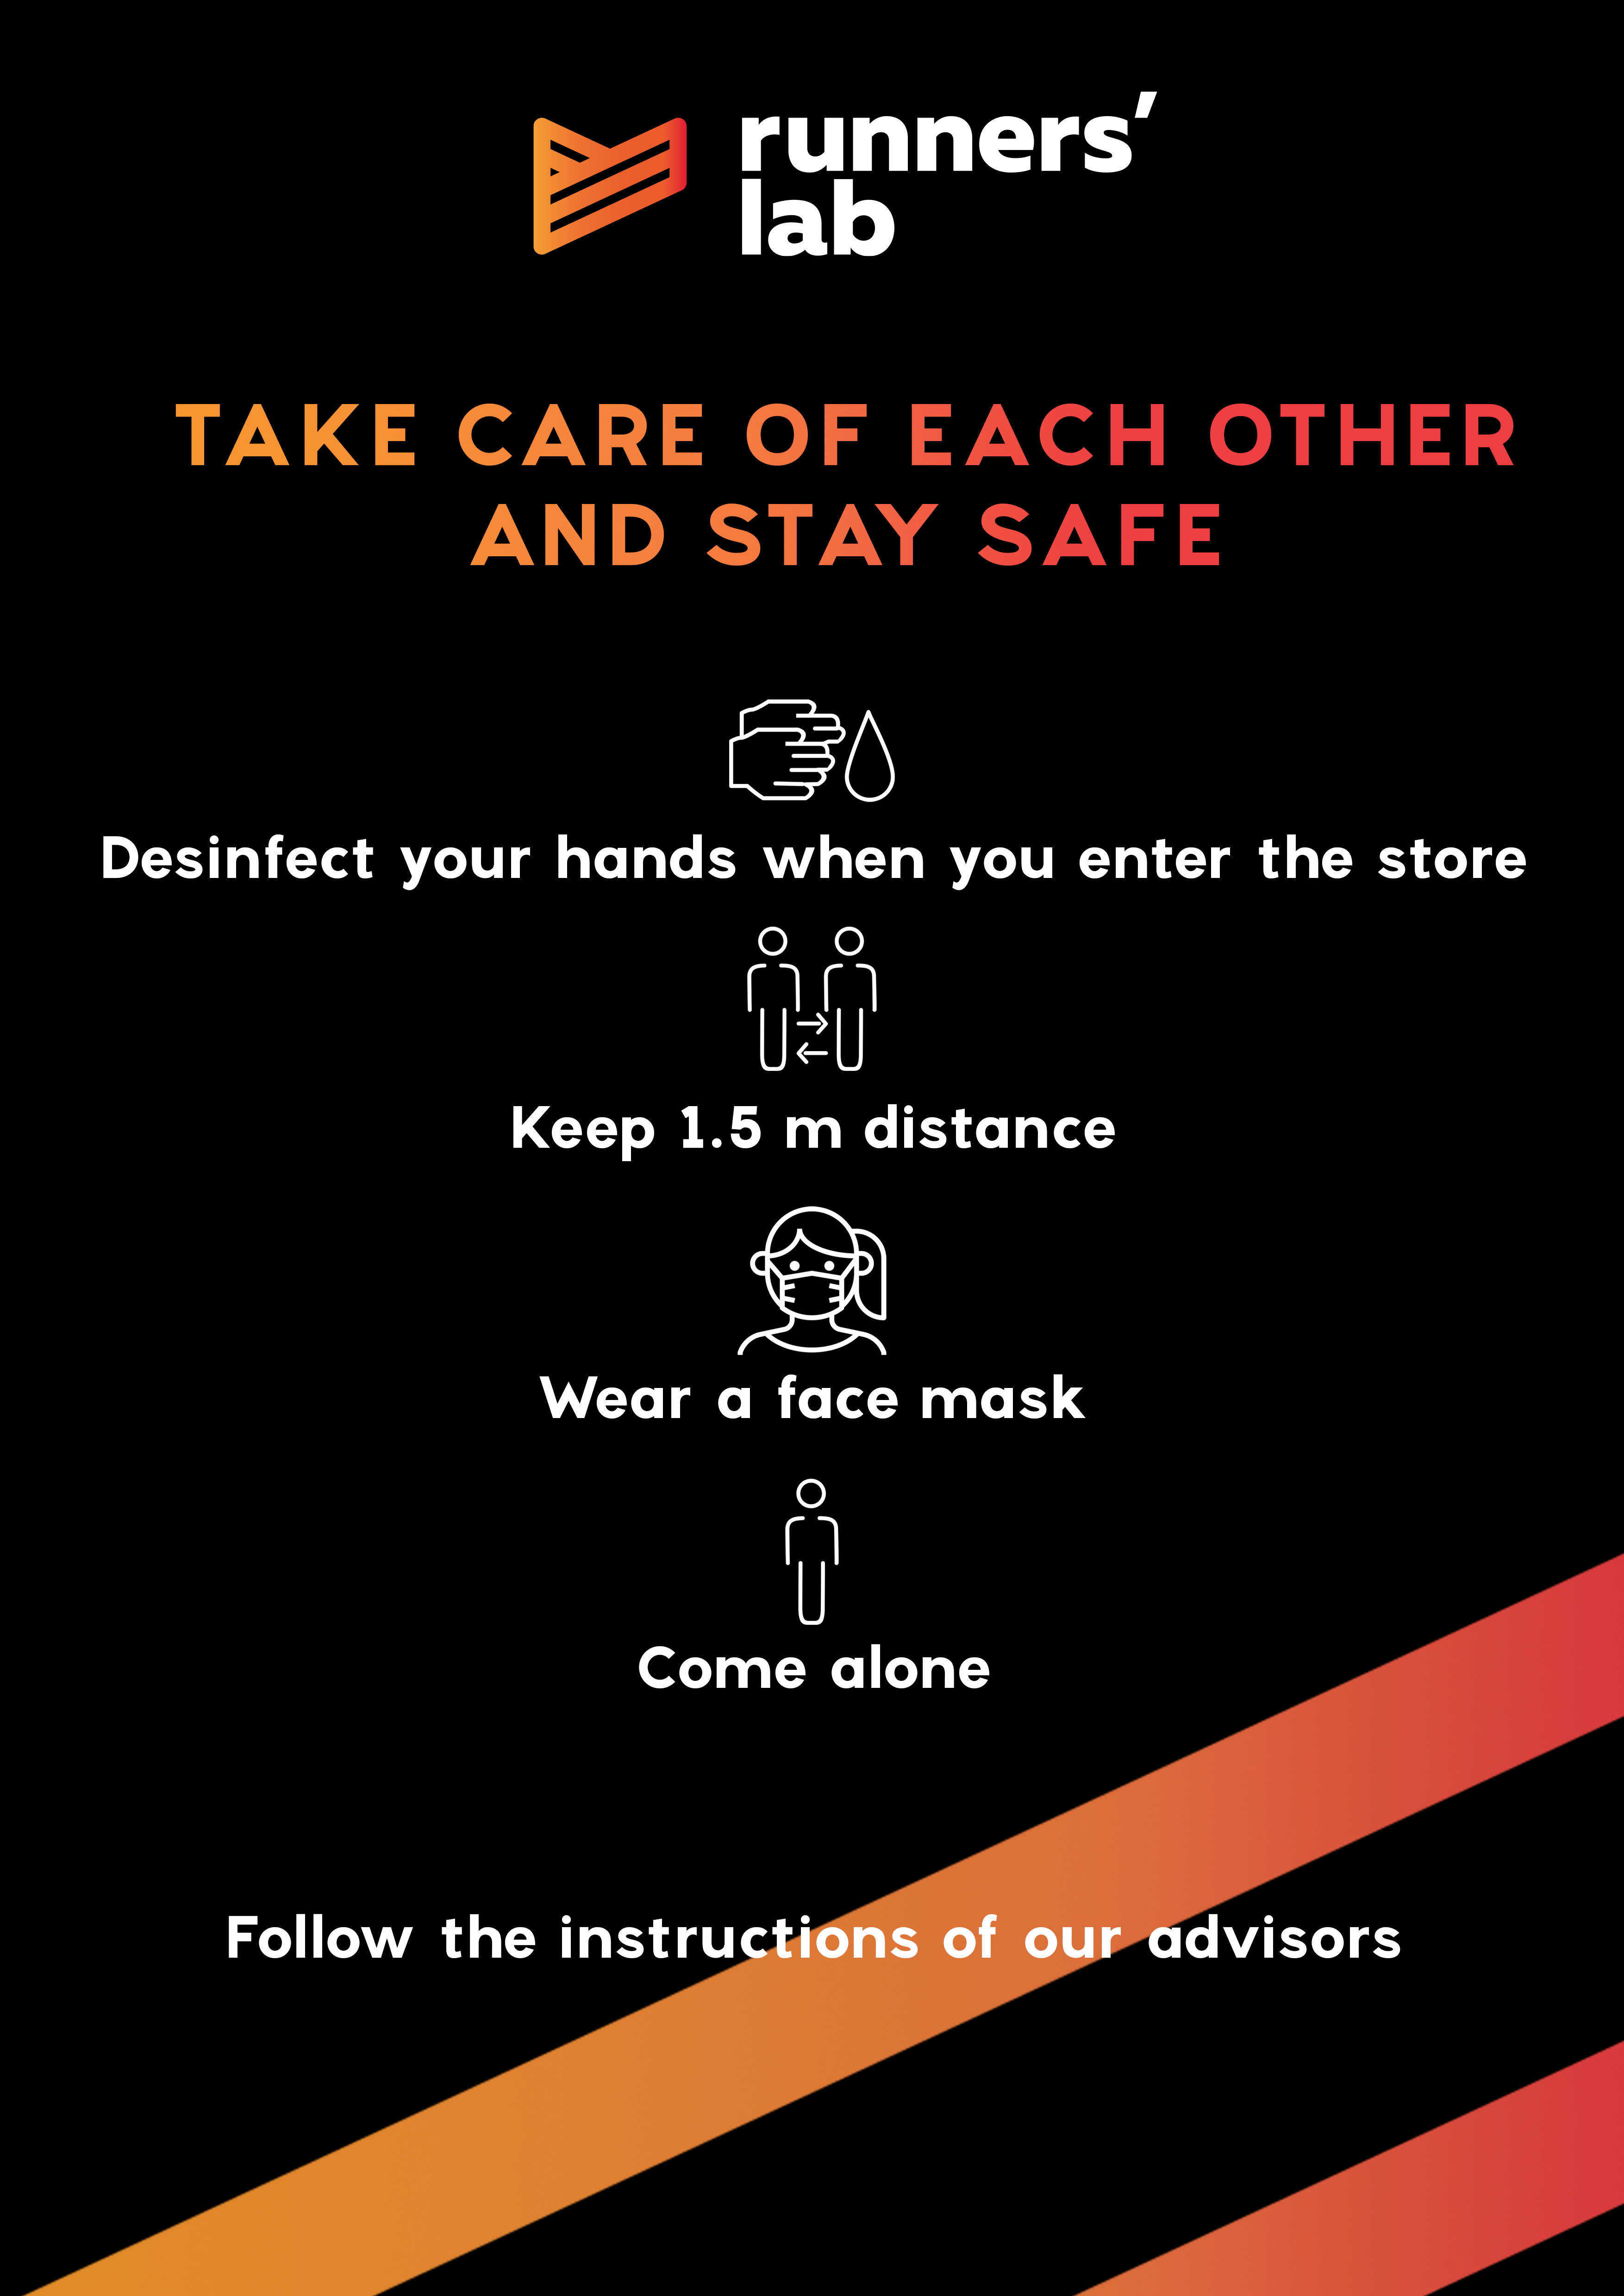 health-instructions-take-care-of-each-other-stay-safe